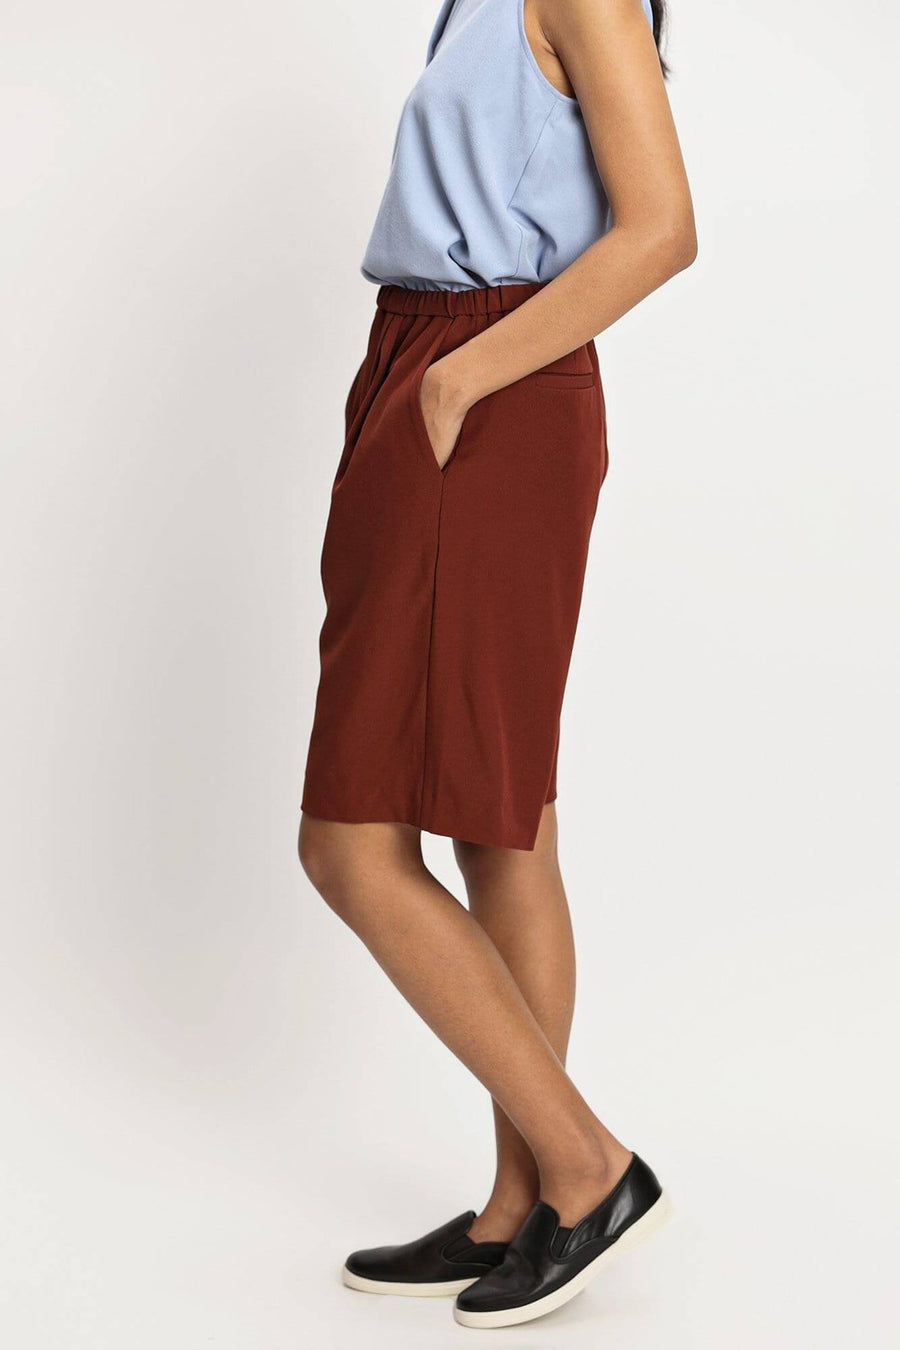 harlan + holden bermuda shorts buffer brown